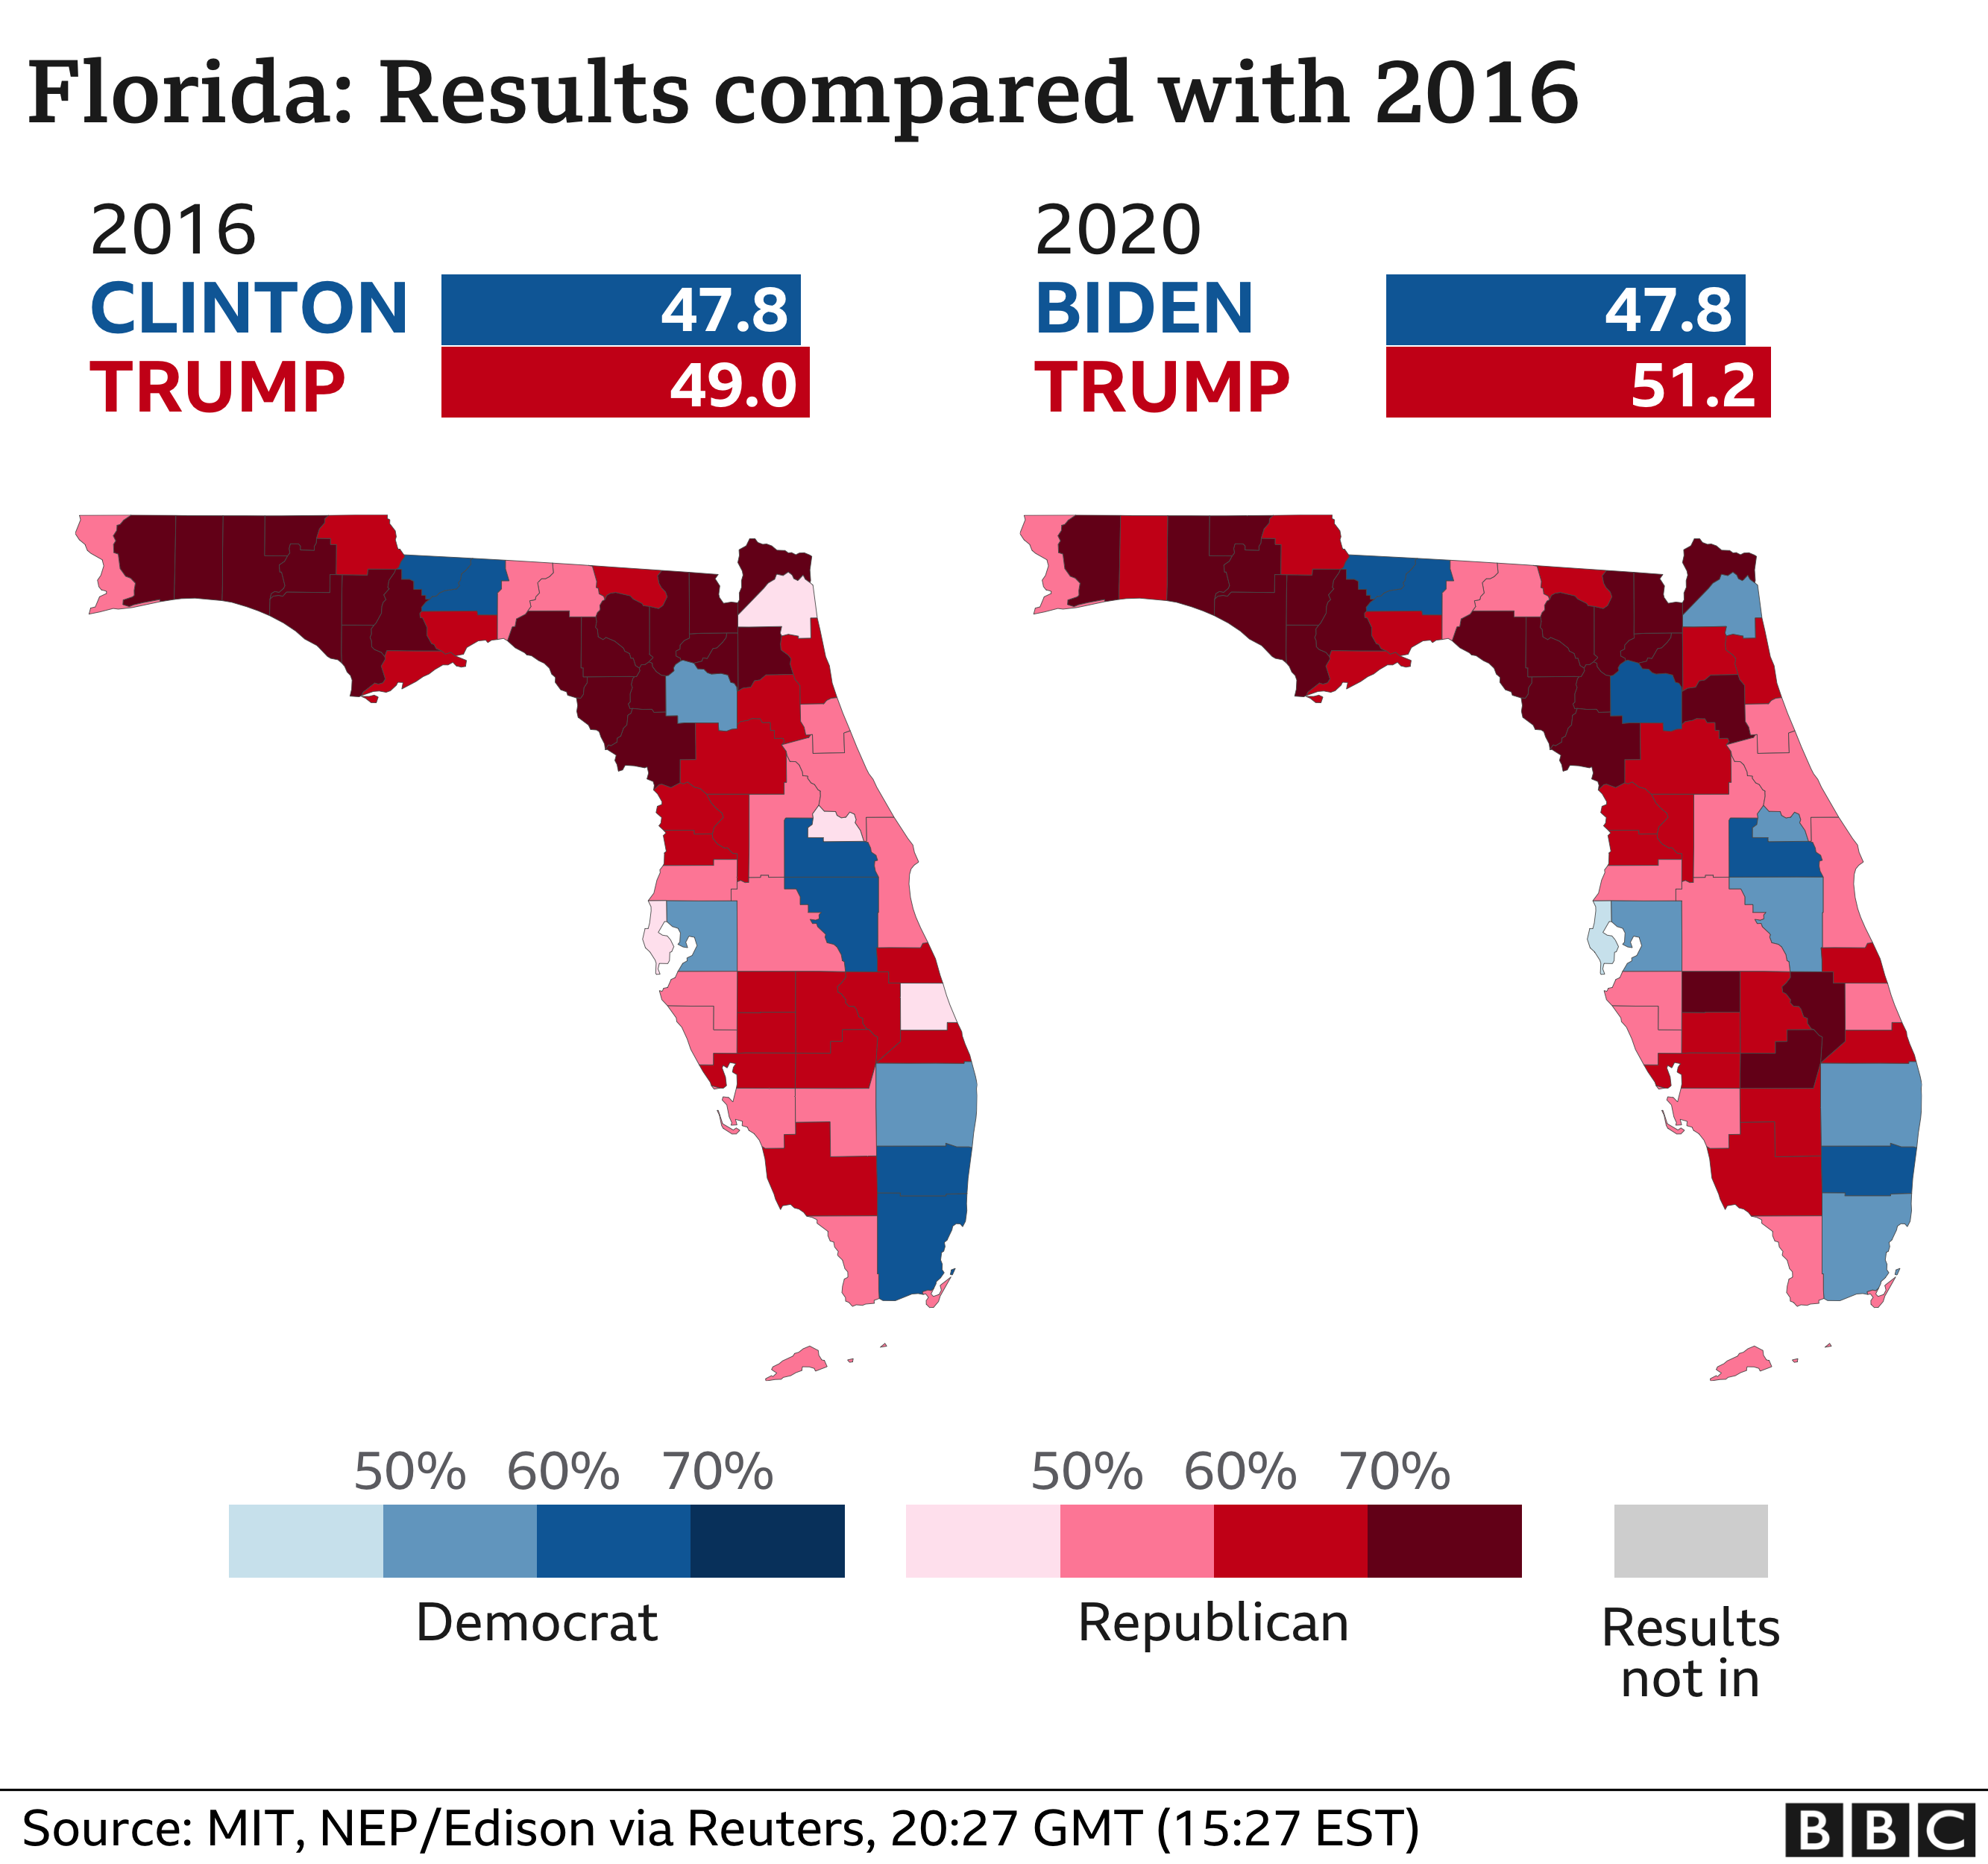 How Trump kept Florida - increased vote share compared to 2016